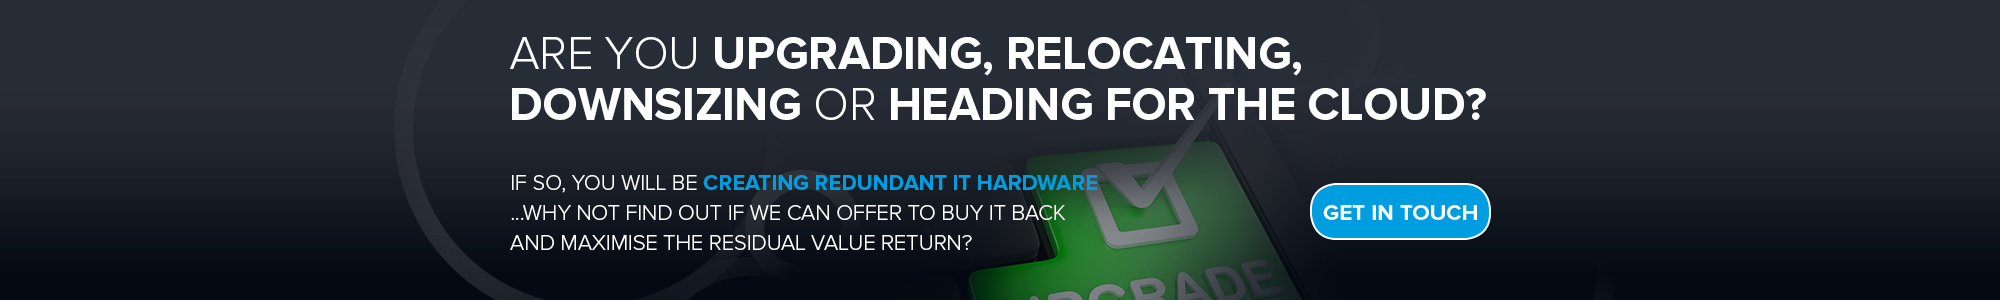 Are you upgrading, relocating, downsizing or heading for the cloud?